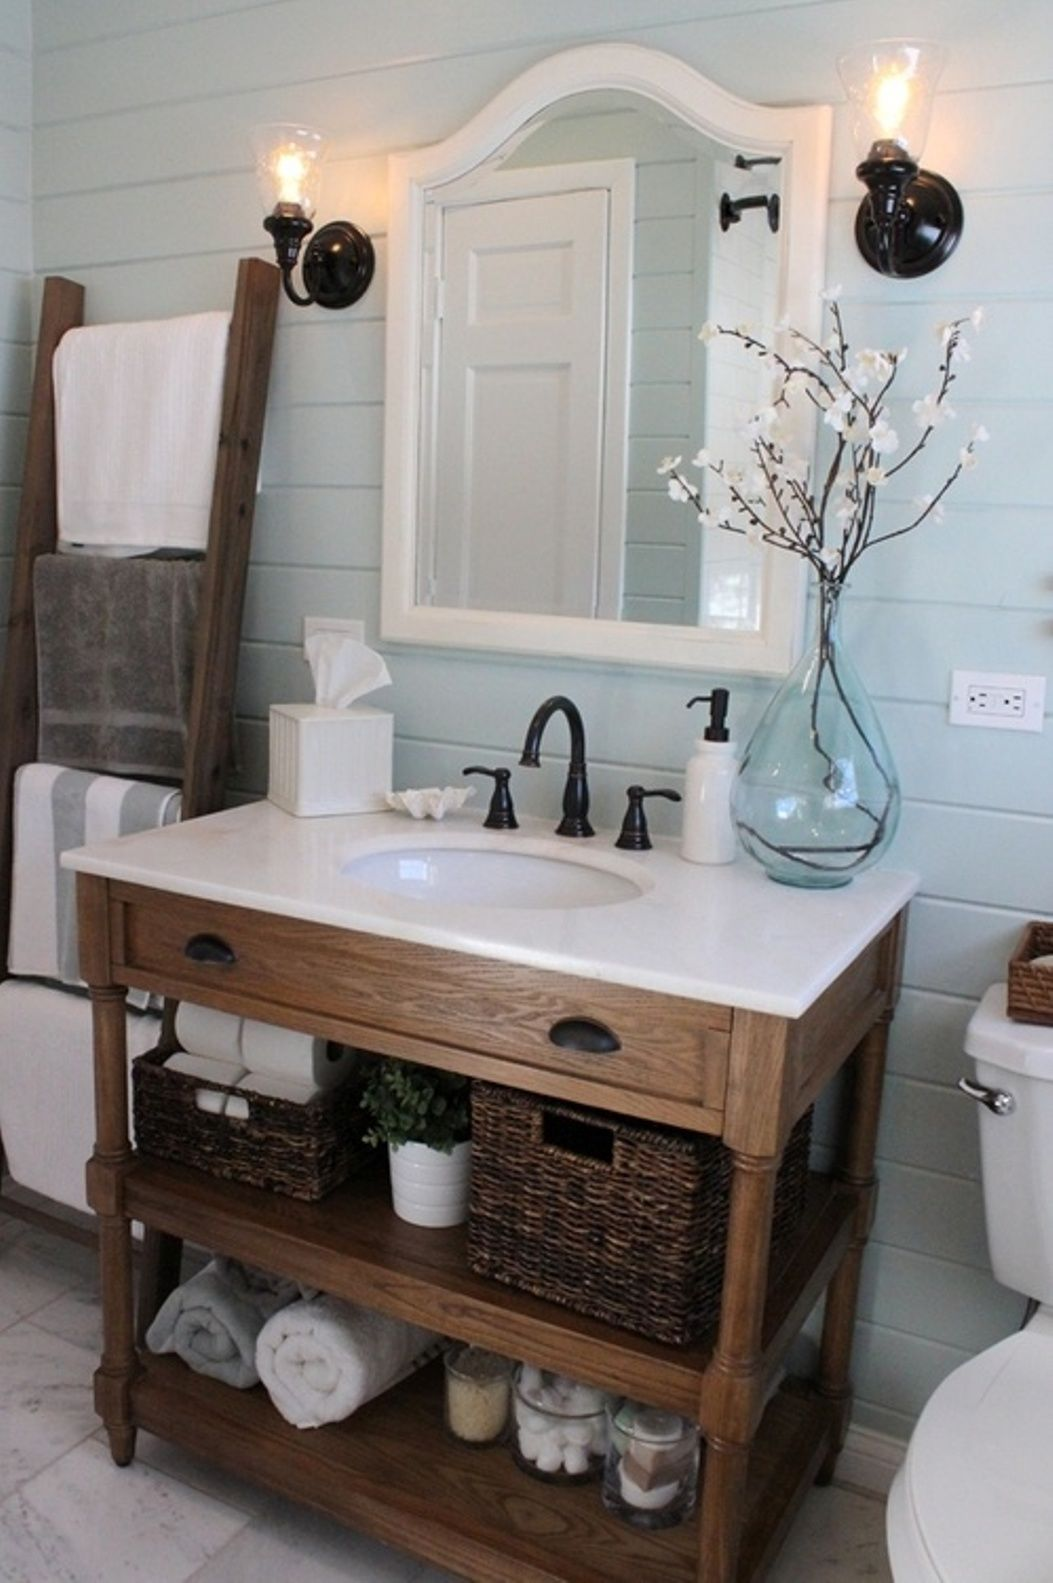 Best 17 Inspiring Rustic Bathroom Decor Ideas For Cozy Home This Month